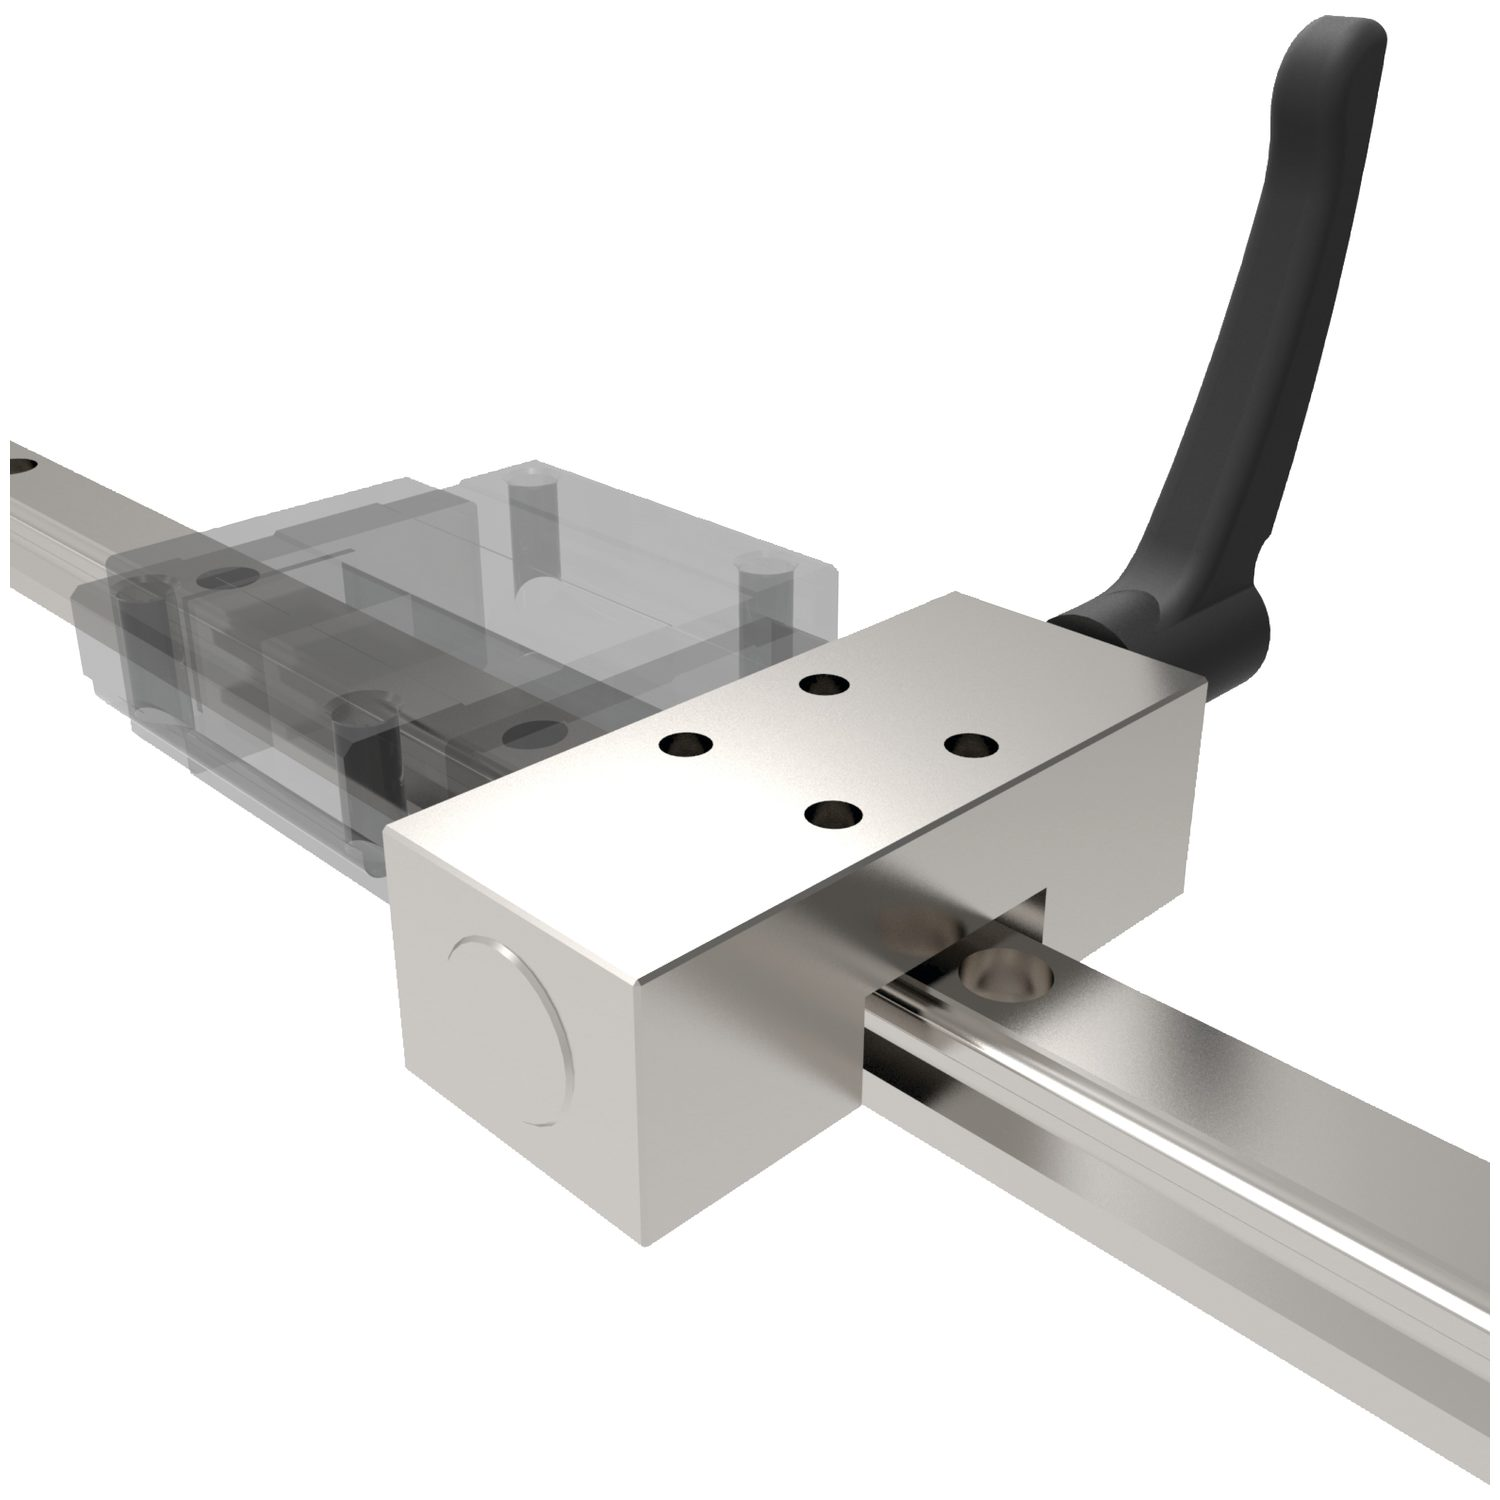 L1016.CL - Rail Clamp